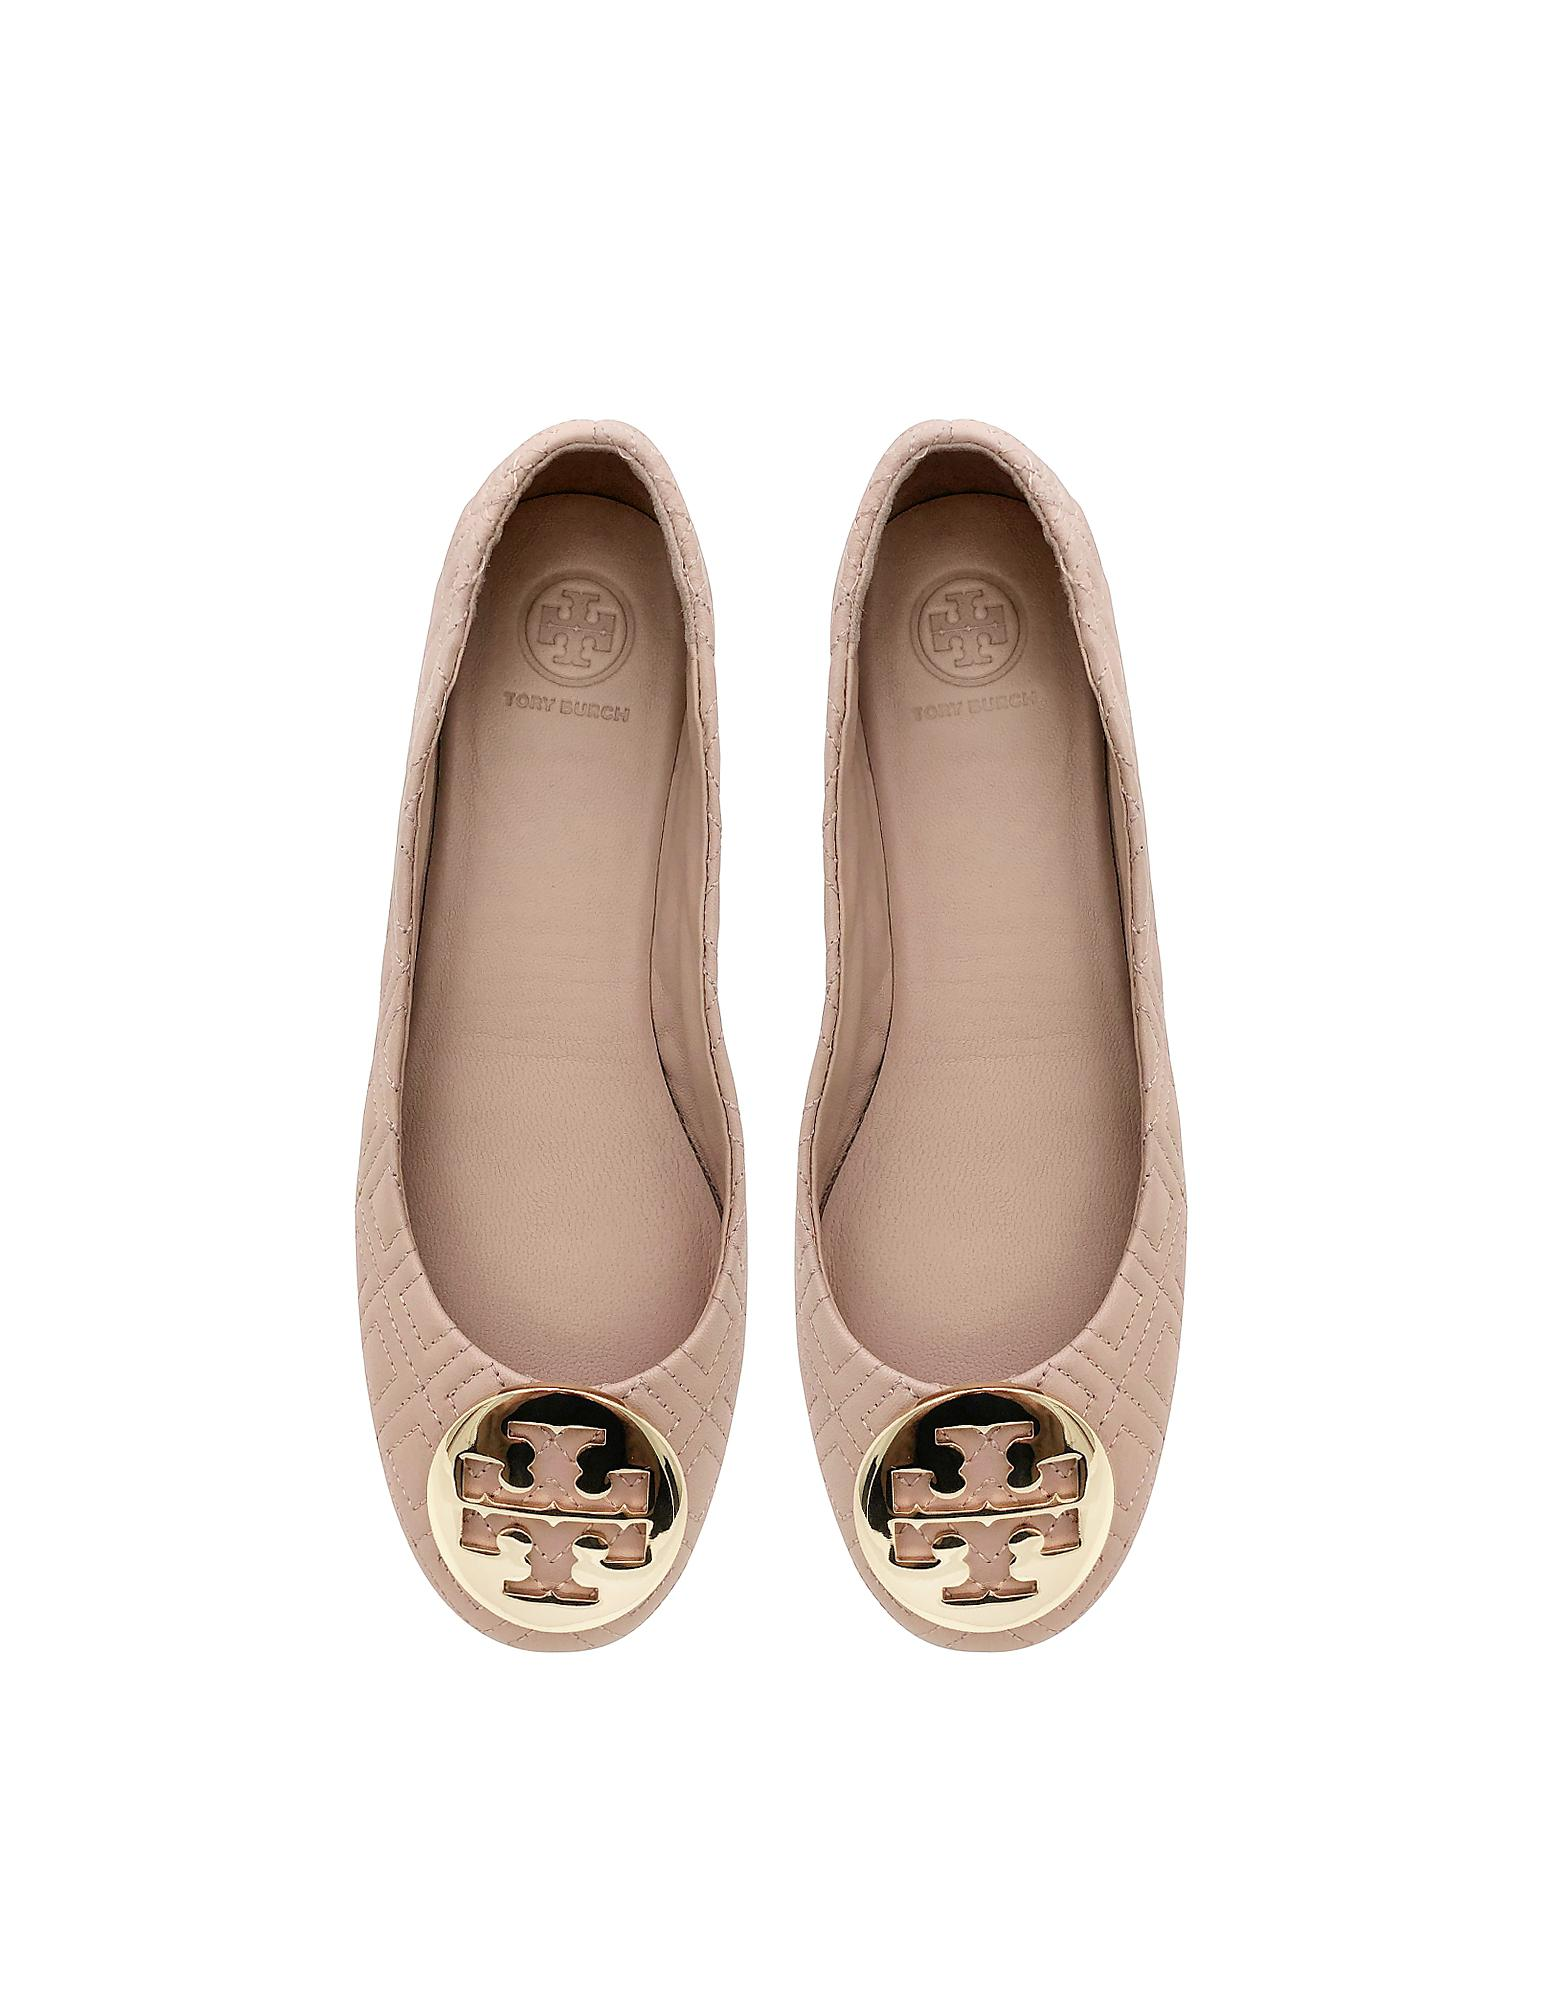 868d5185514 Lyst - Tory Burch Goan Sand Quilted Nappa Leather Minnie Ballerinas ...